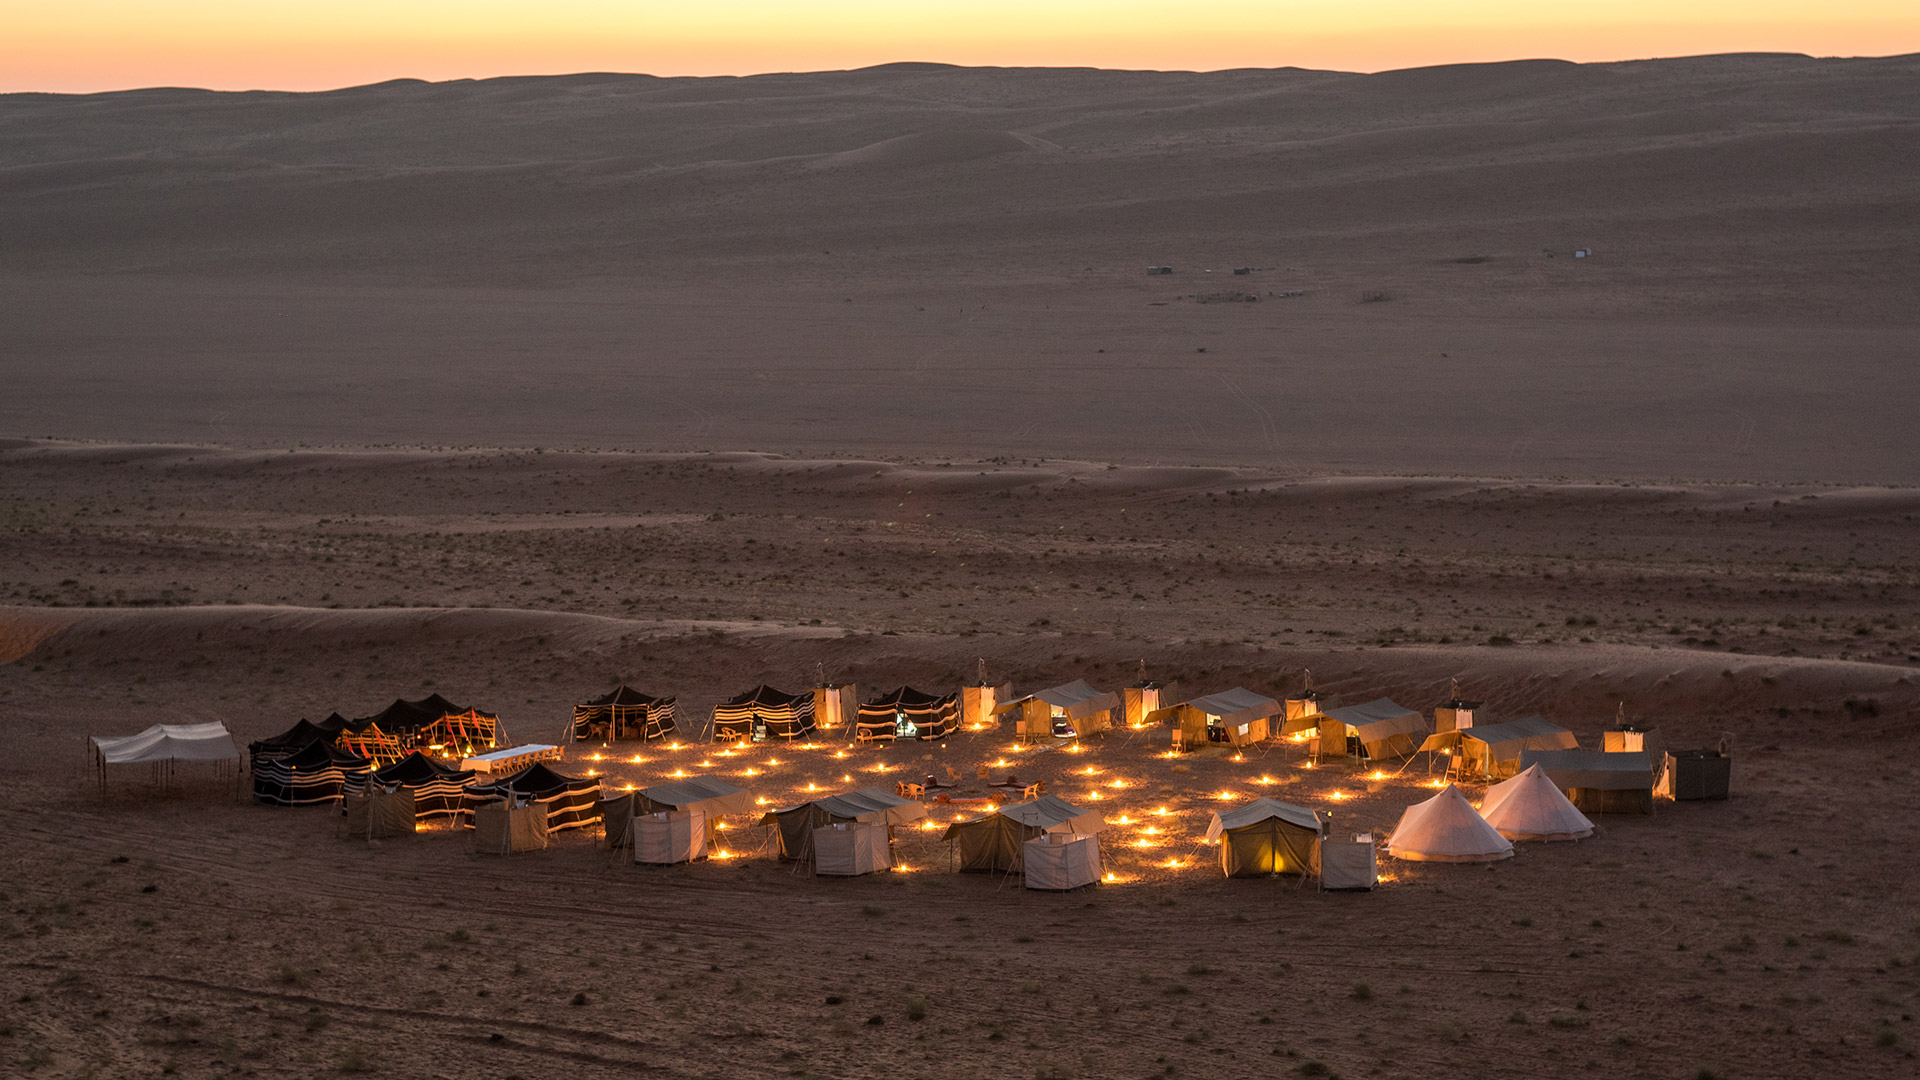 A large private camp in the Wahiba Sands